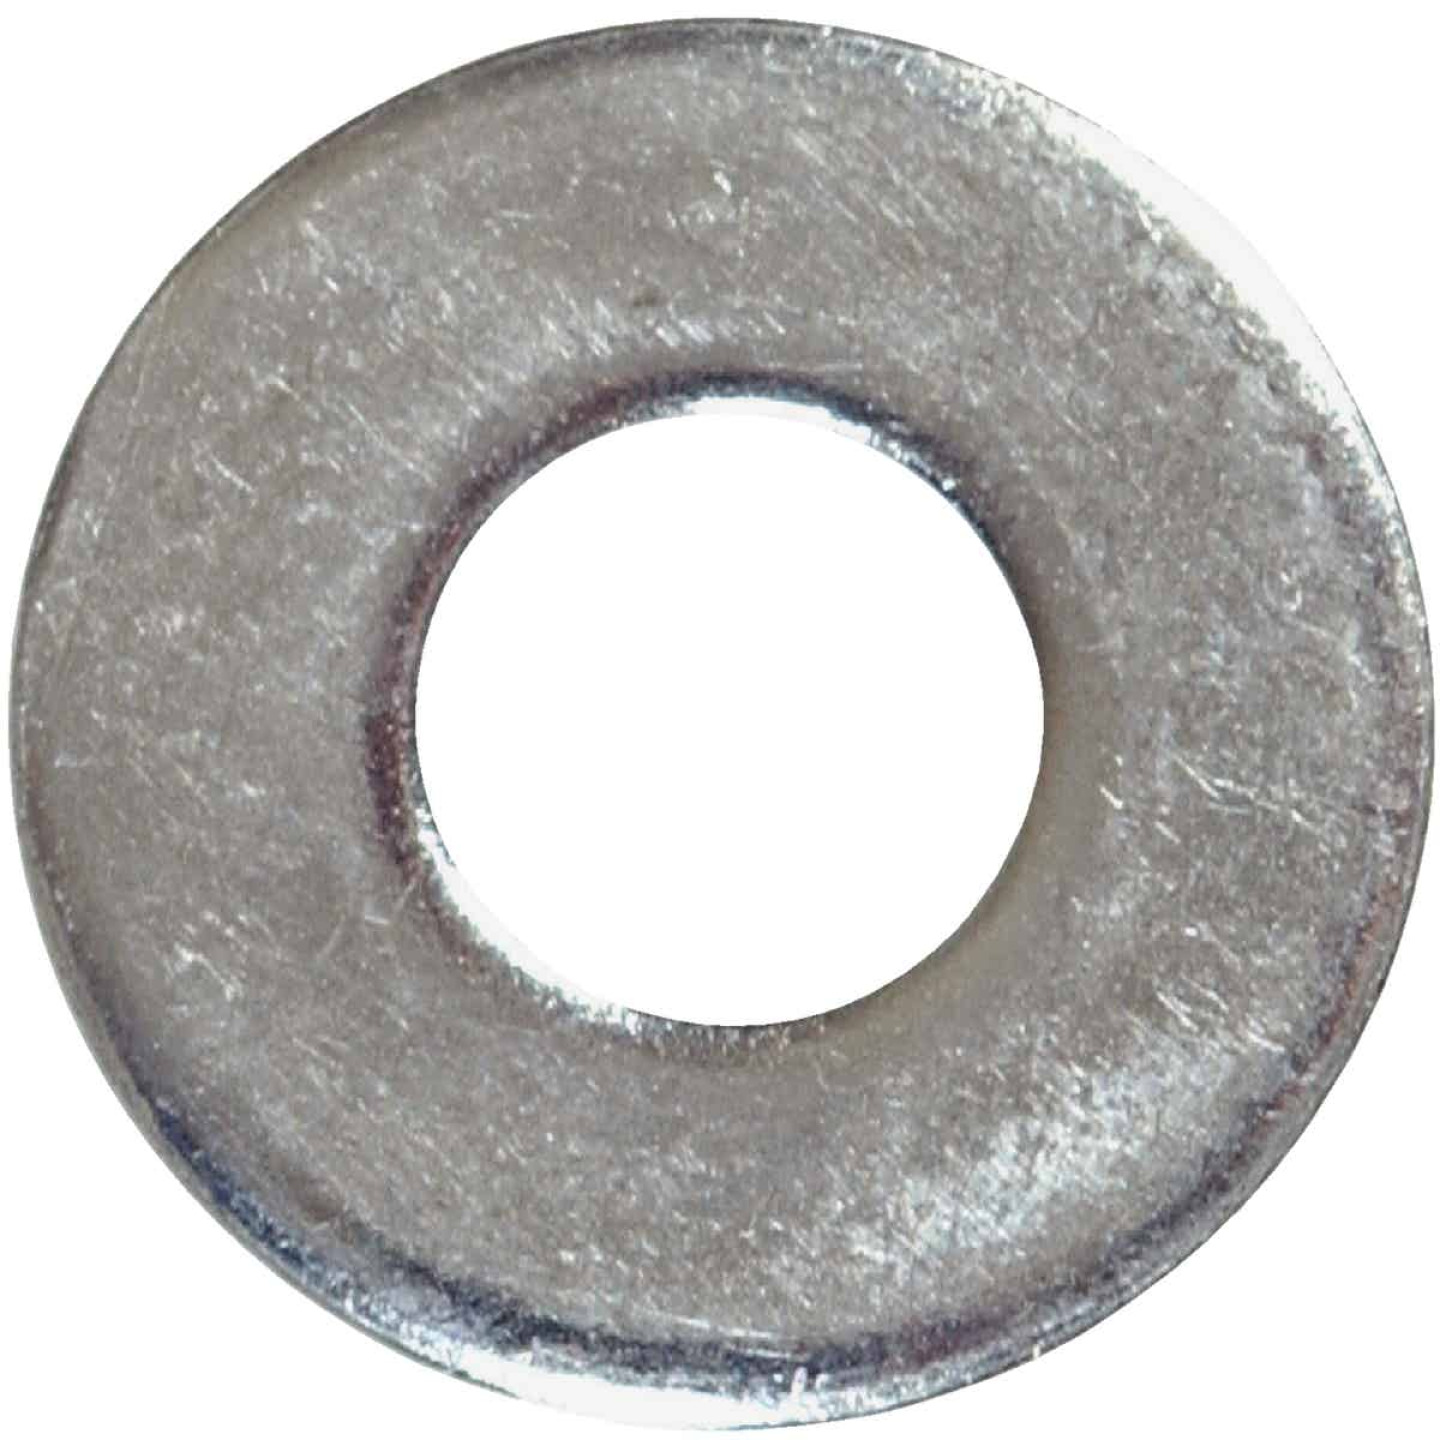 Hillman 3/8 In. Steel Zinc Plated Flat USS Washer (335 Ct., 5 Lb.) Image 1